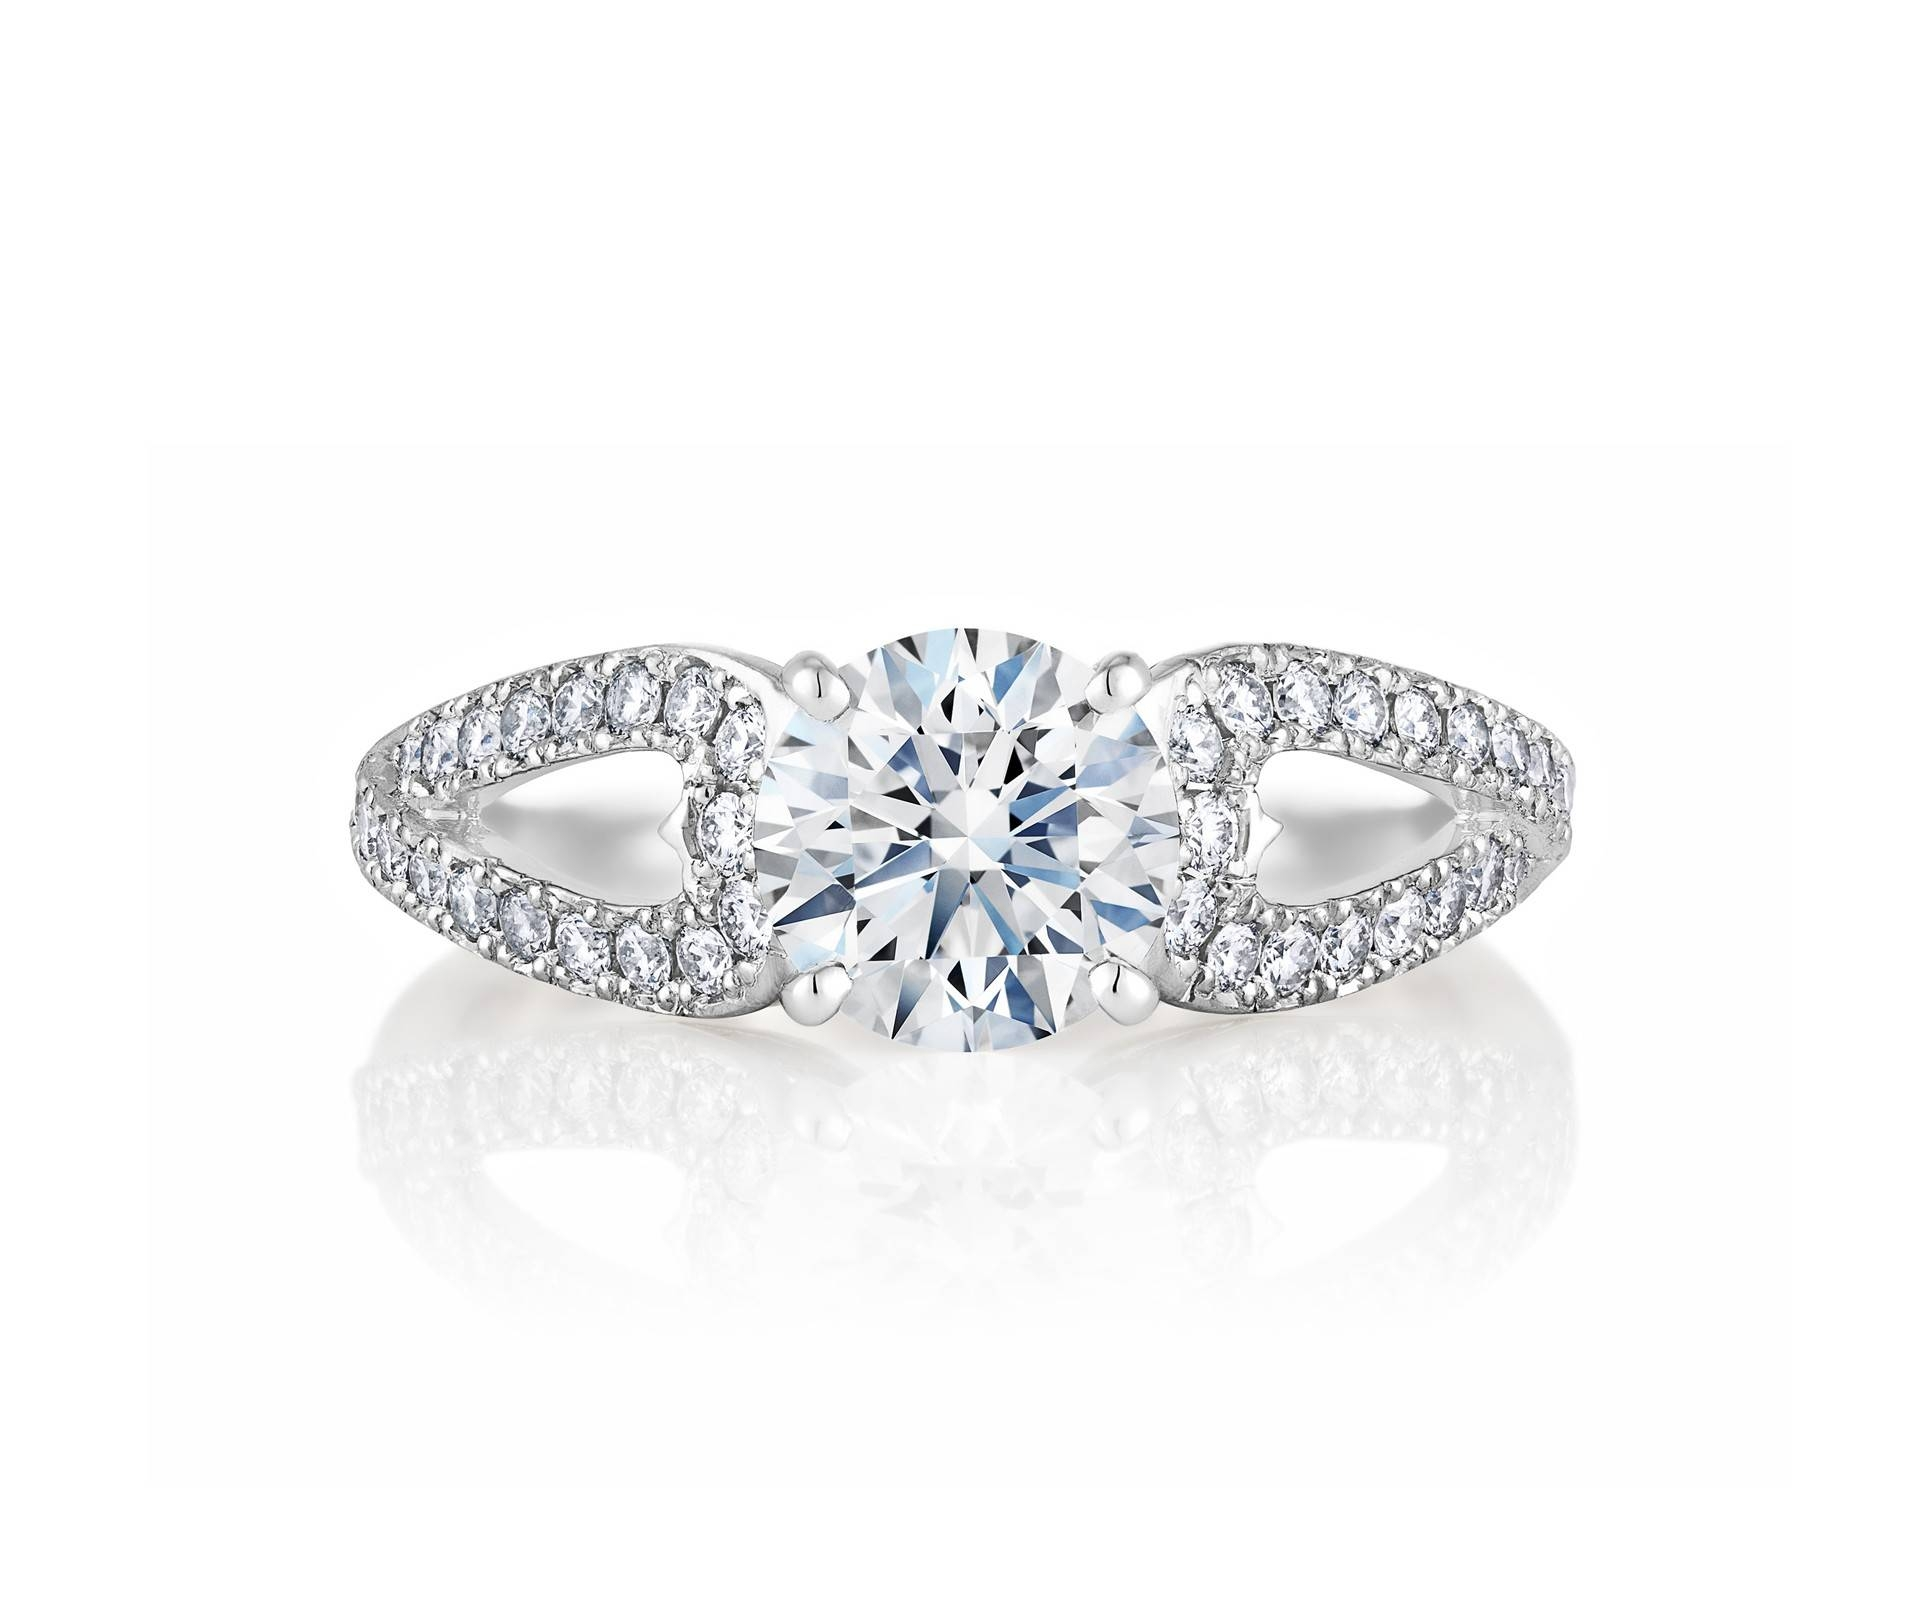 Diamond Engagement Rings & Promise Rings | De Beers Inside Solitare Diamond Engagement Rings (View 3 of 15)